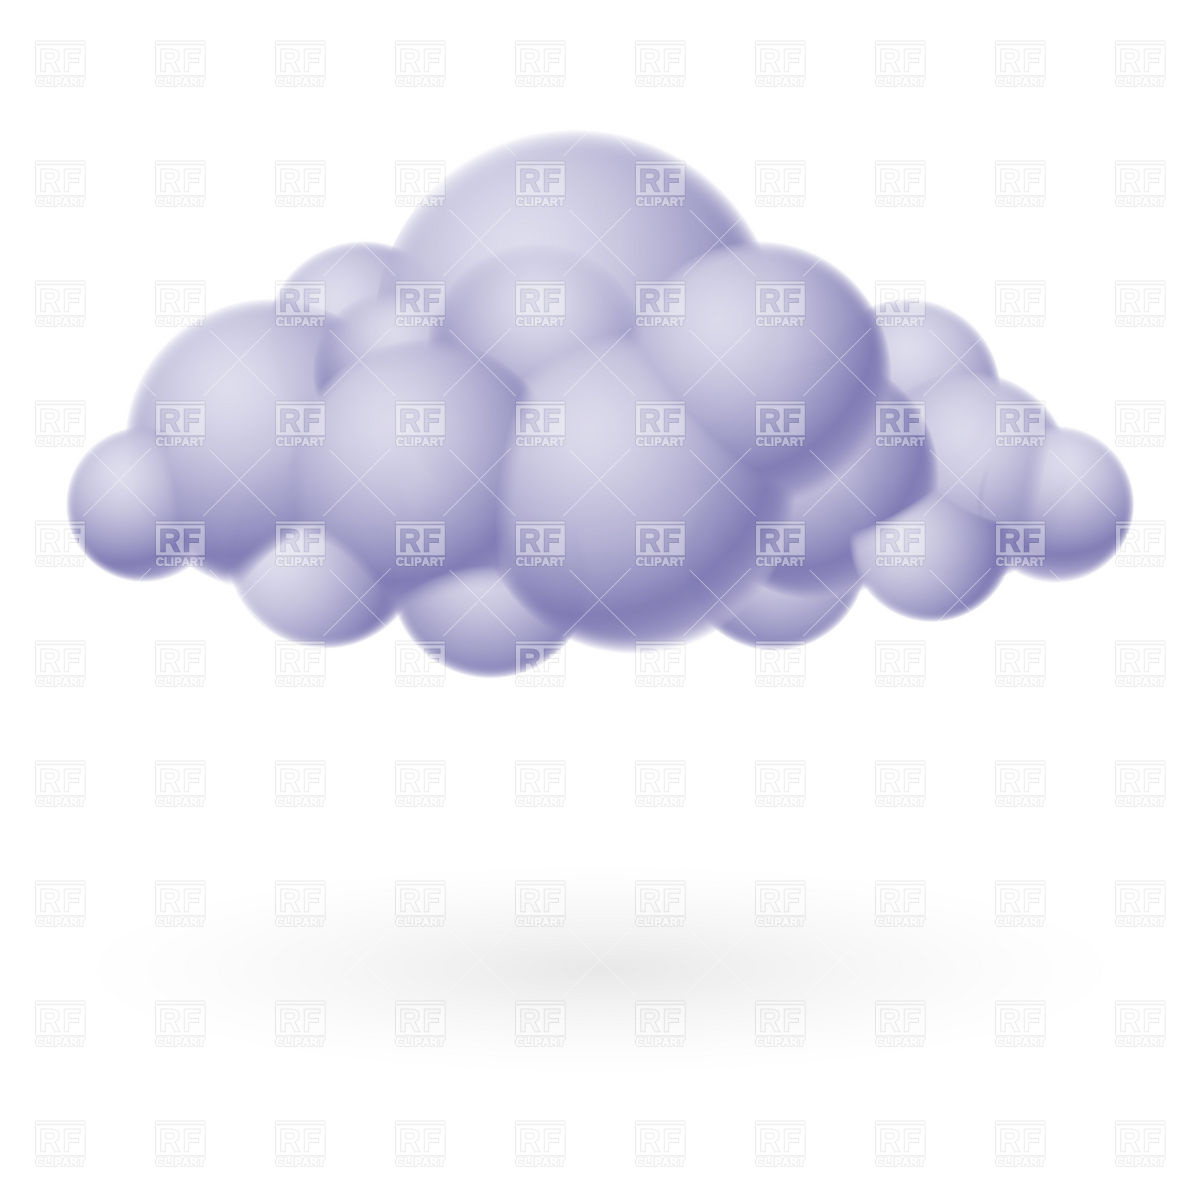 Storm Cloud 9178 Download Royalty Free Vector Clipart  Eps